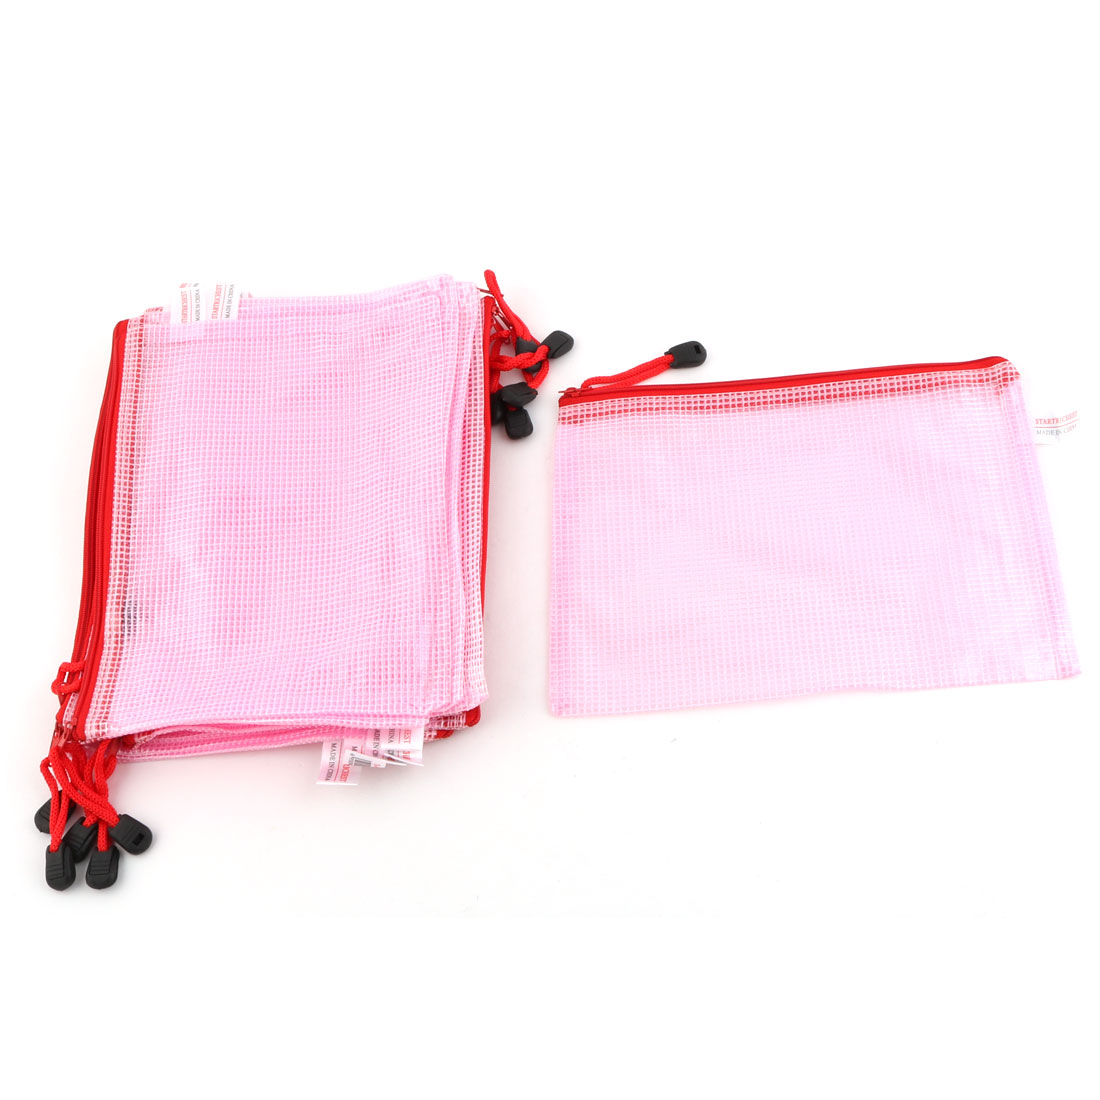 Office School Netting Surface Zipper Closure A5 Document File Bag Holder Pink 12 Pcs